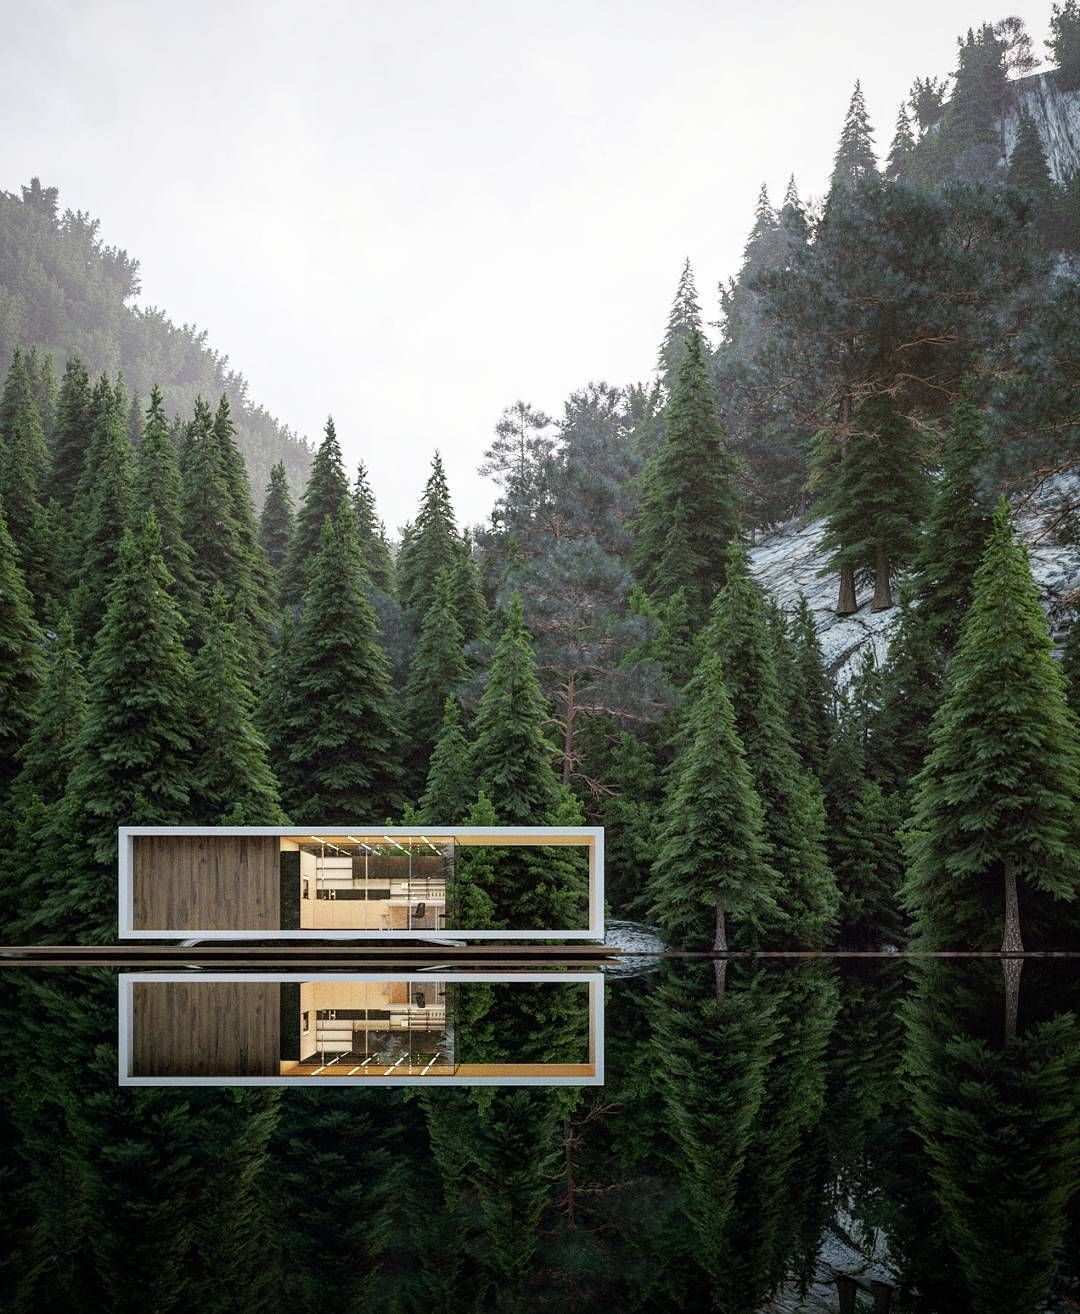 7 Amazing Houses Built Into Nature: 15.4 Mil Me Gusta, 81 Comentarios